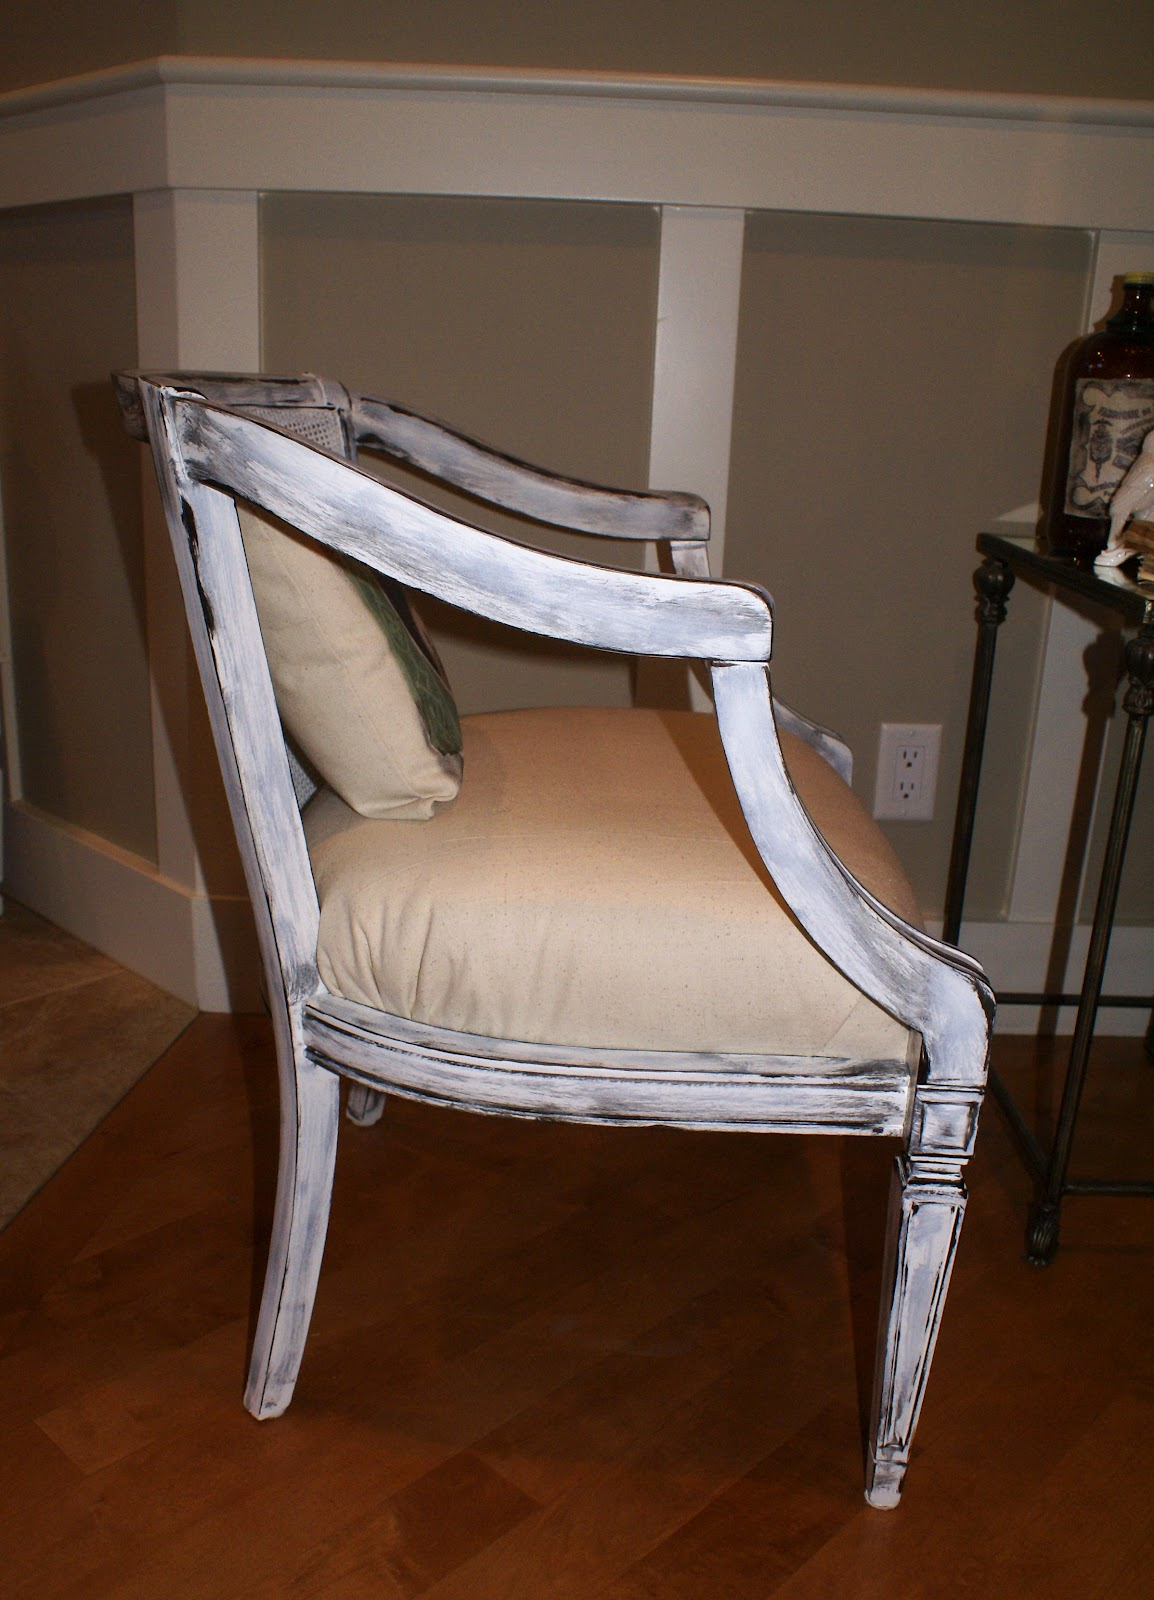 Antique tub chairs - I Painted Them My Favorite Off White Then Made Them Pop With My Shabby Style